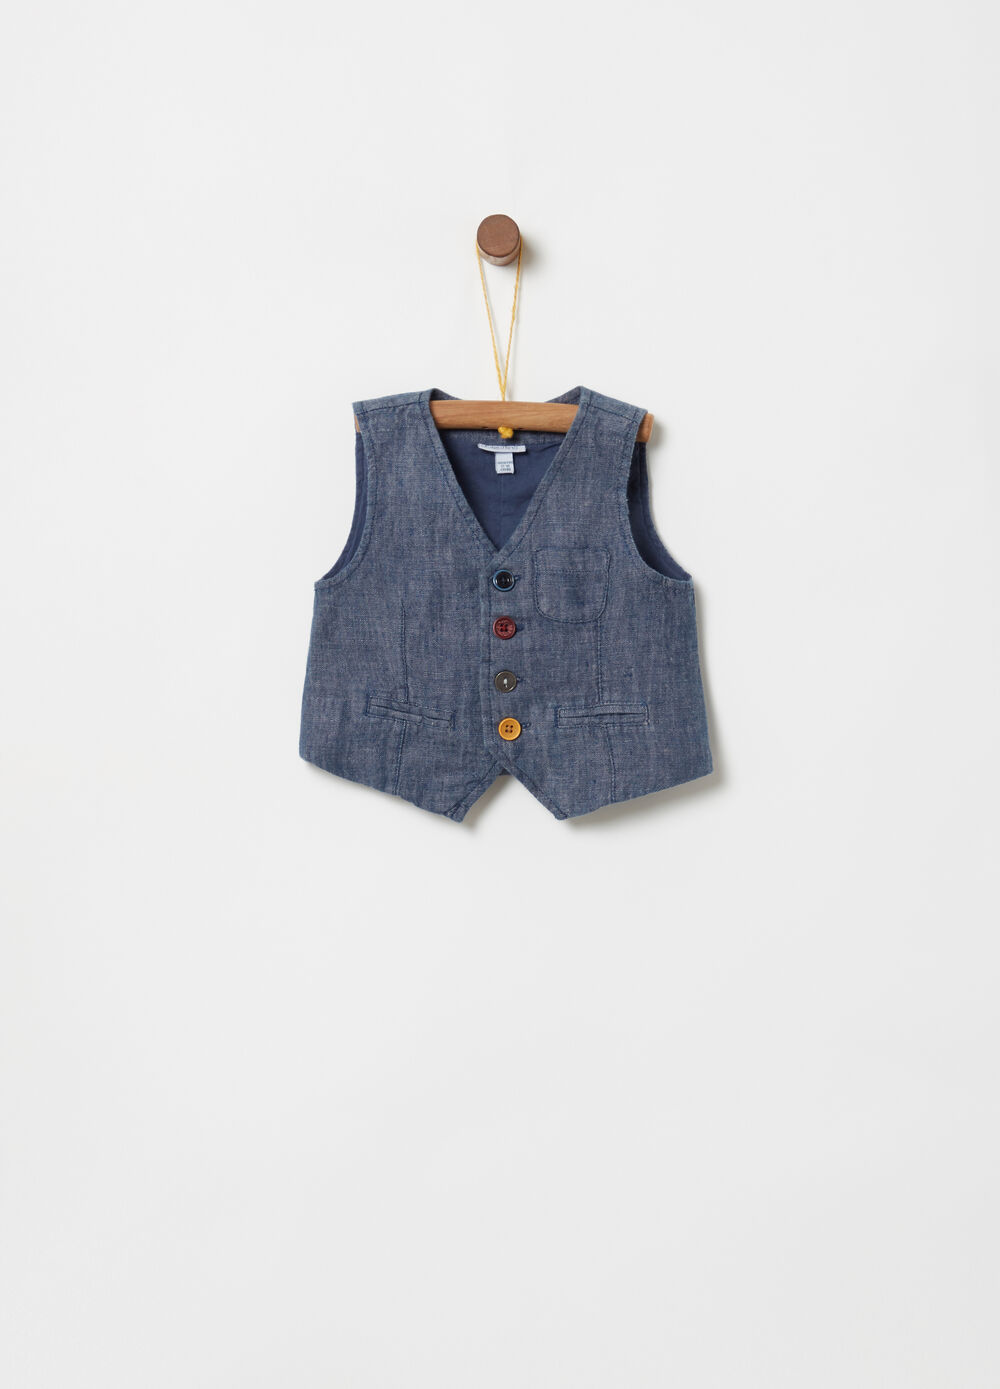 100% linen gilet with coin pocket and pockets